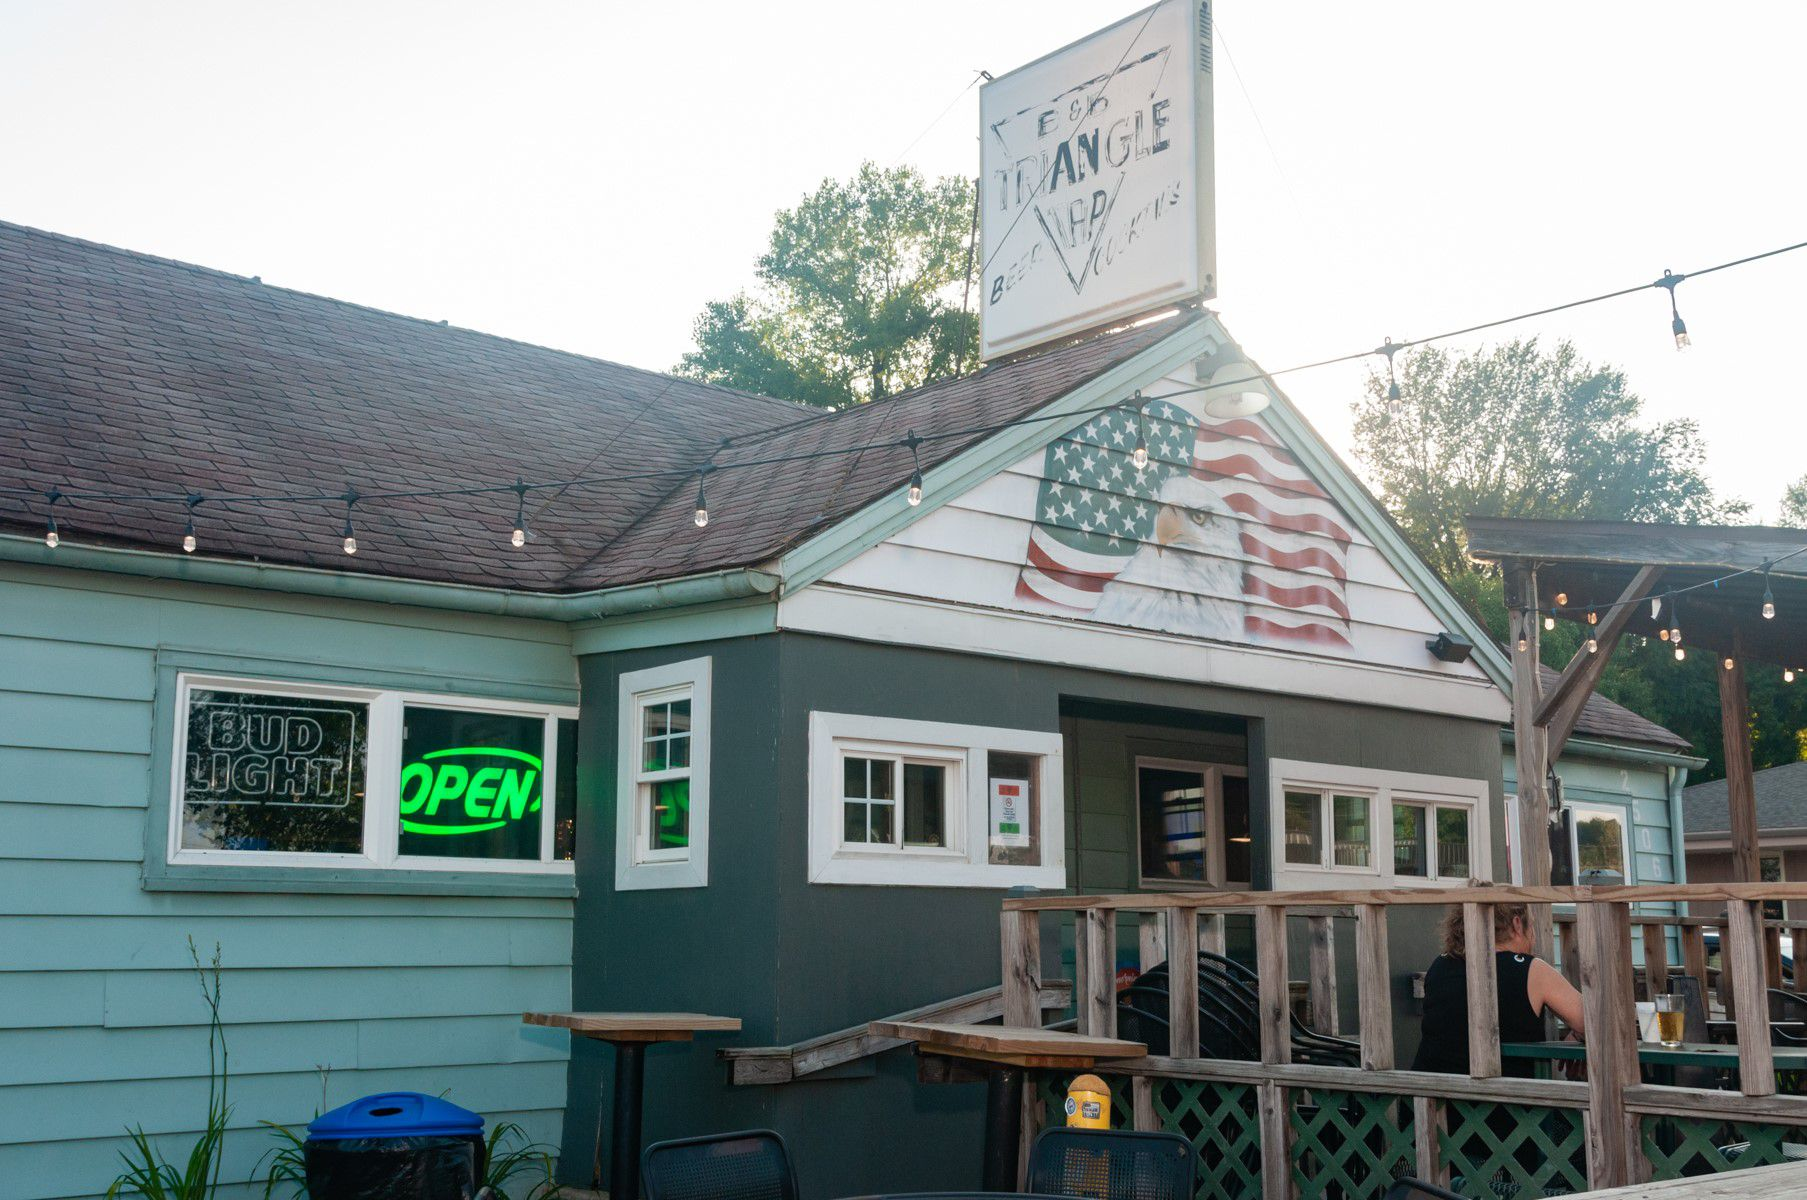 The Triangle Tap storefront.